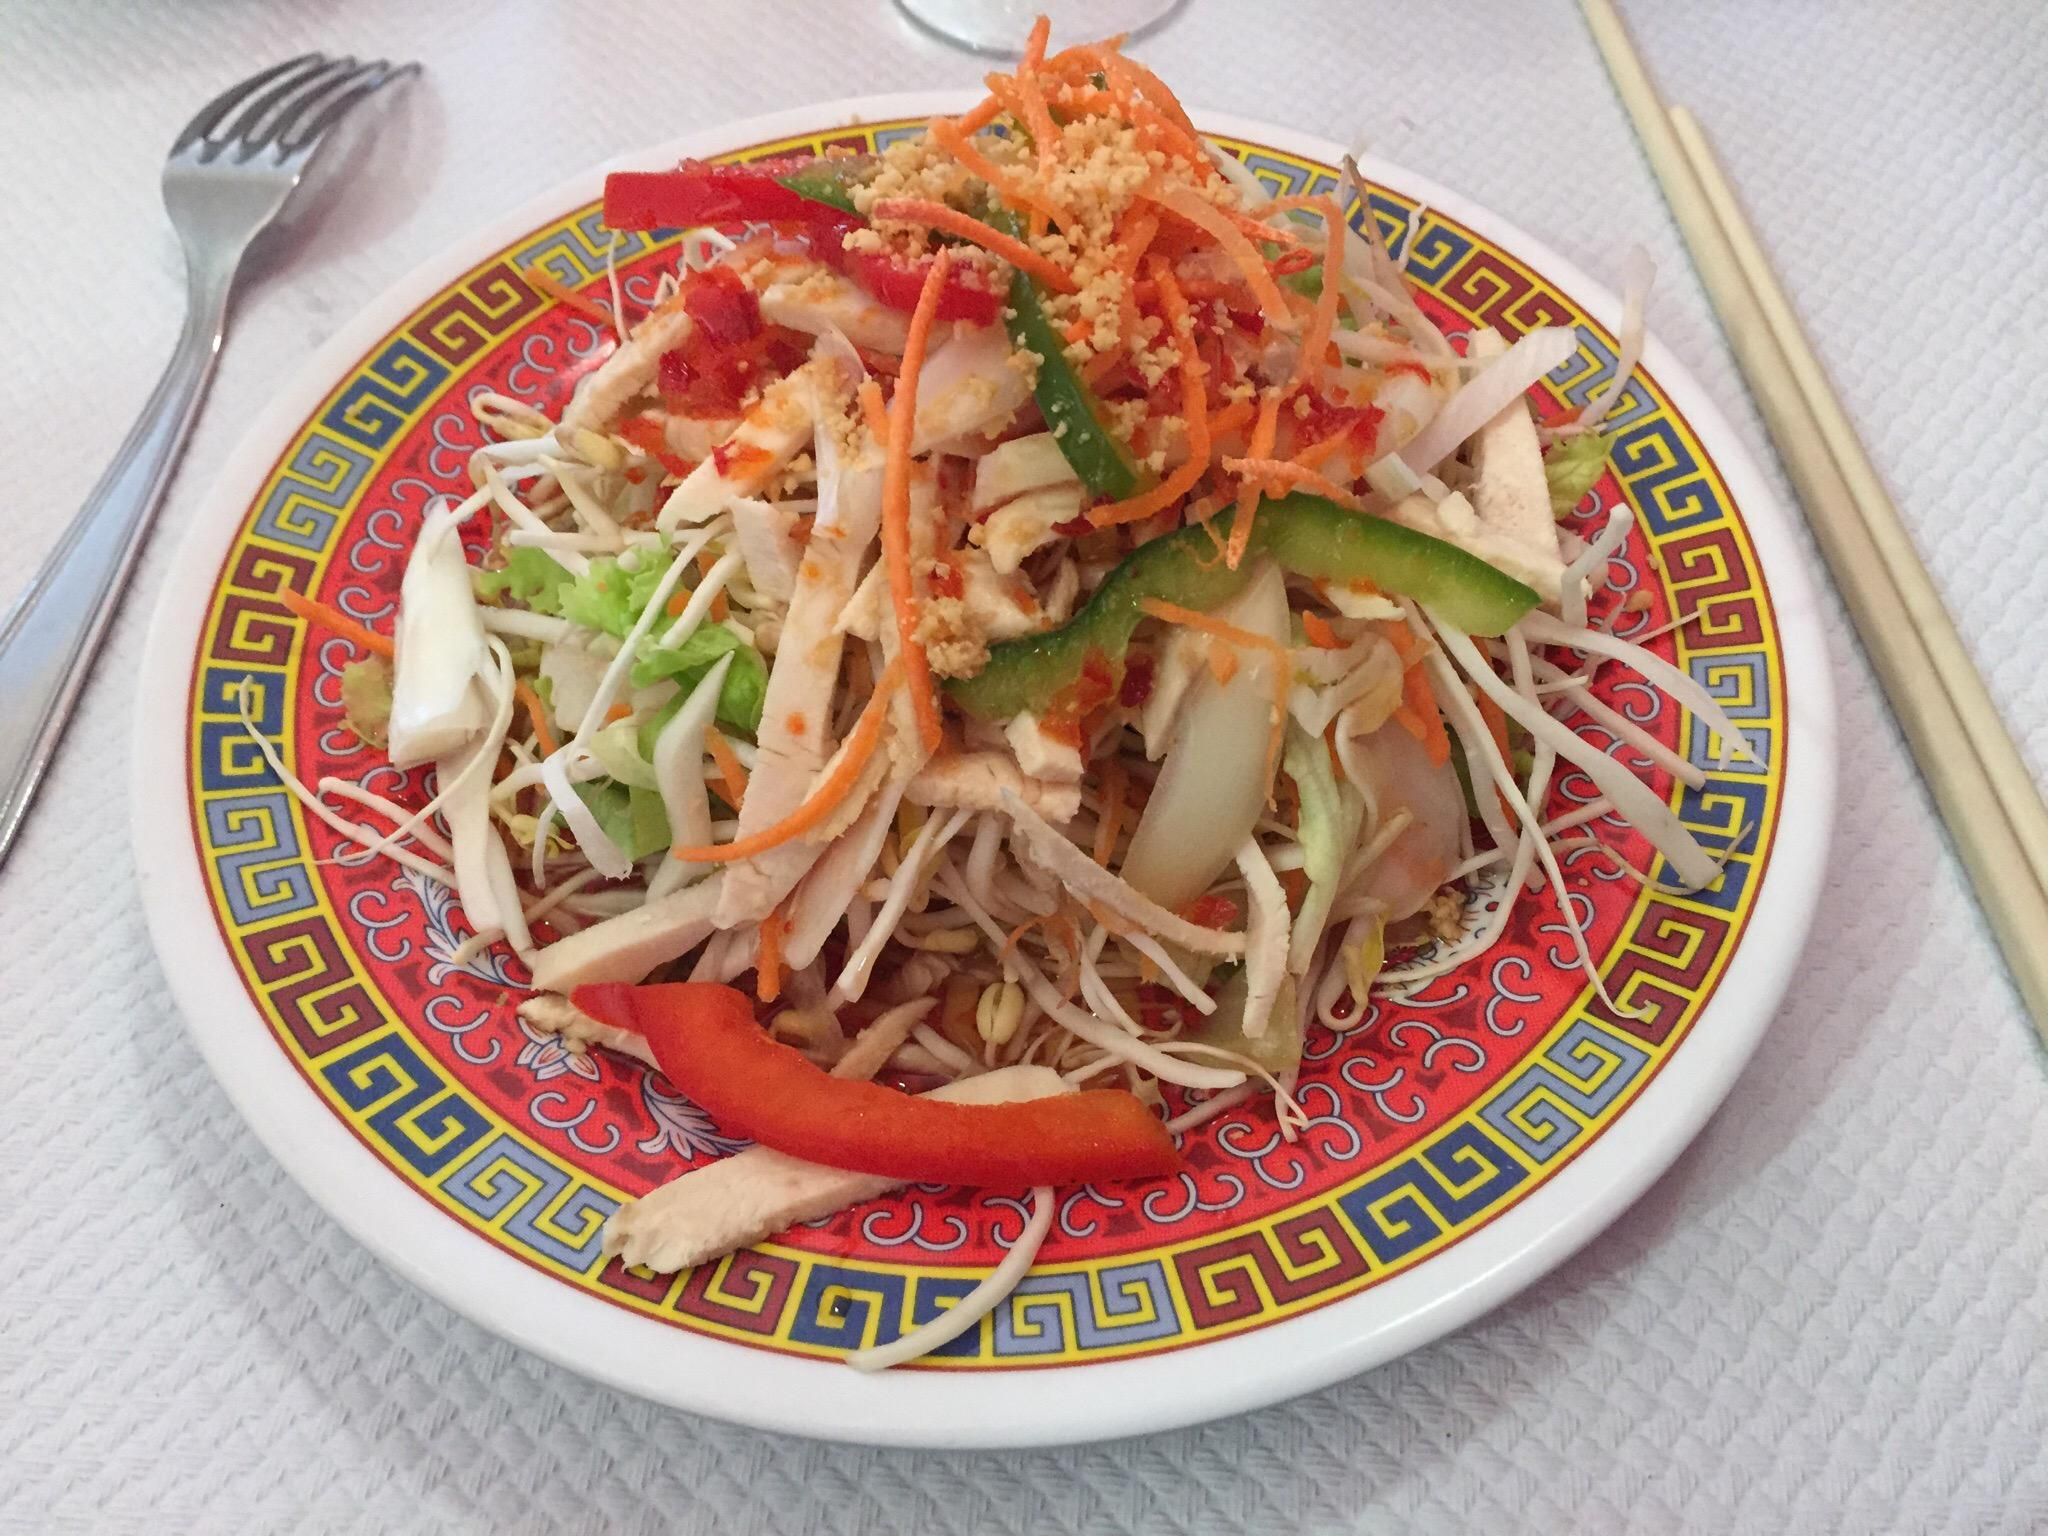 Things To Do in Cambodian, Restaurants in Cambodian